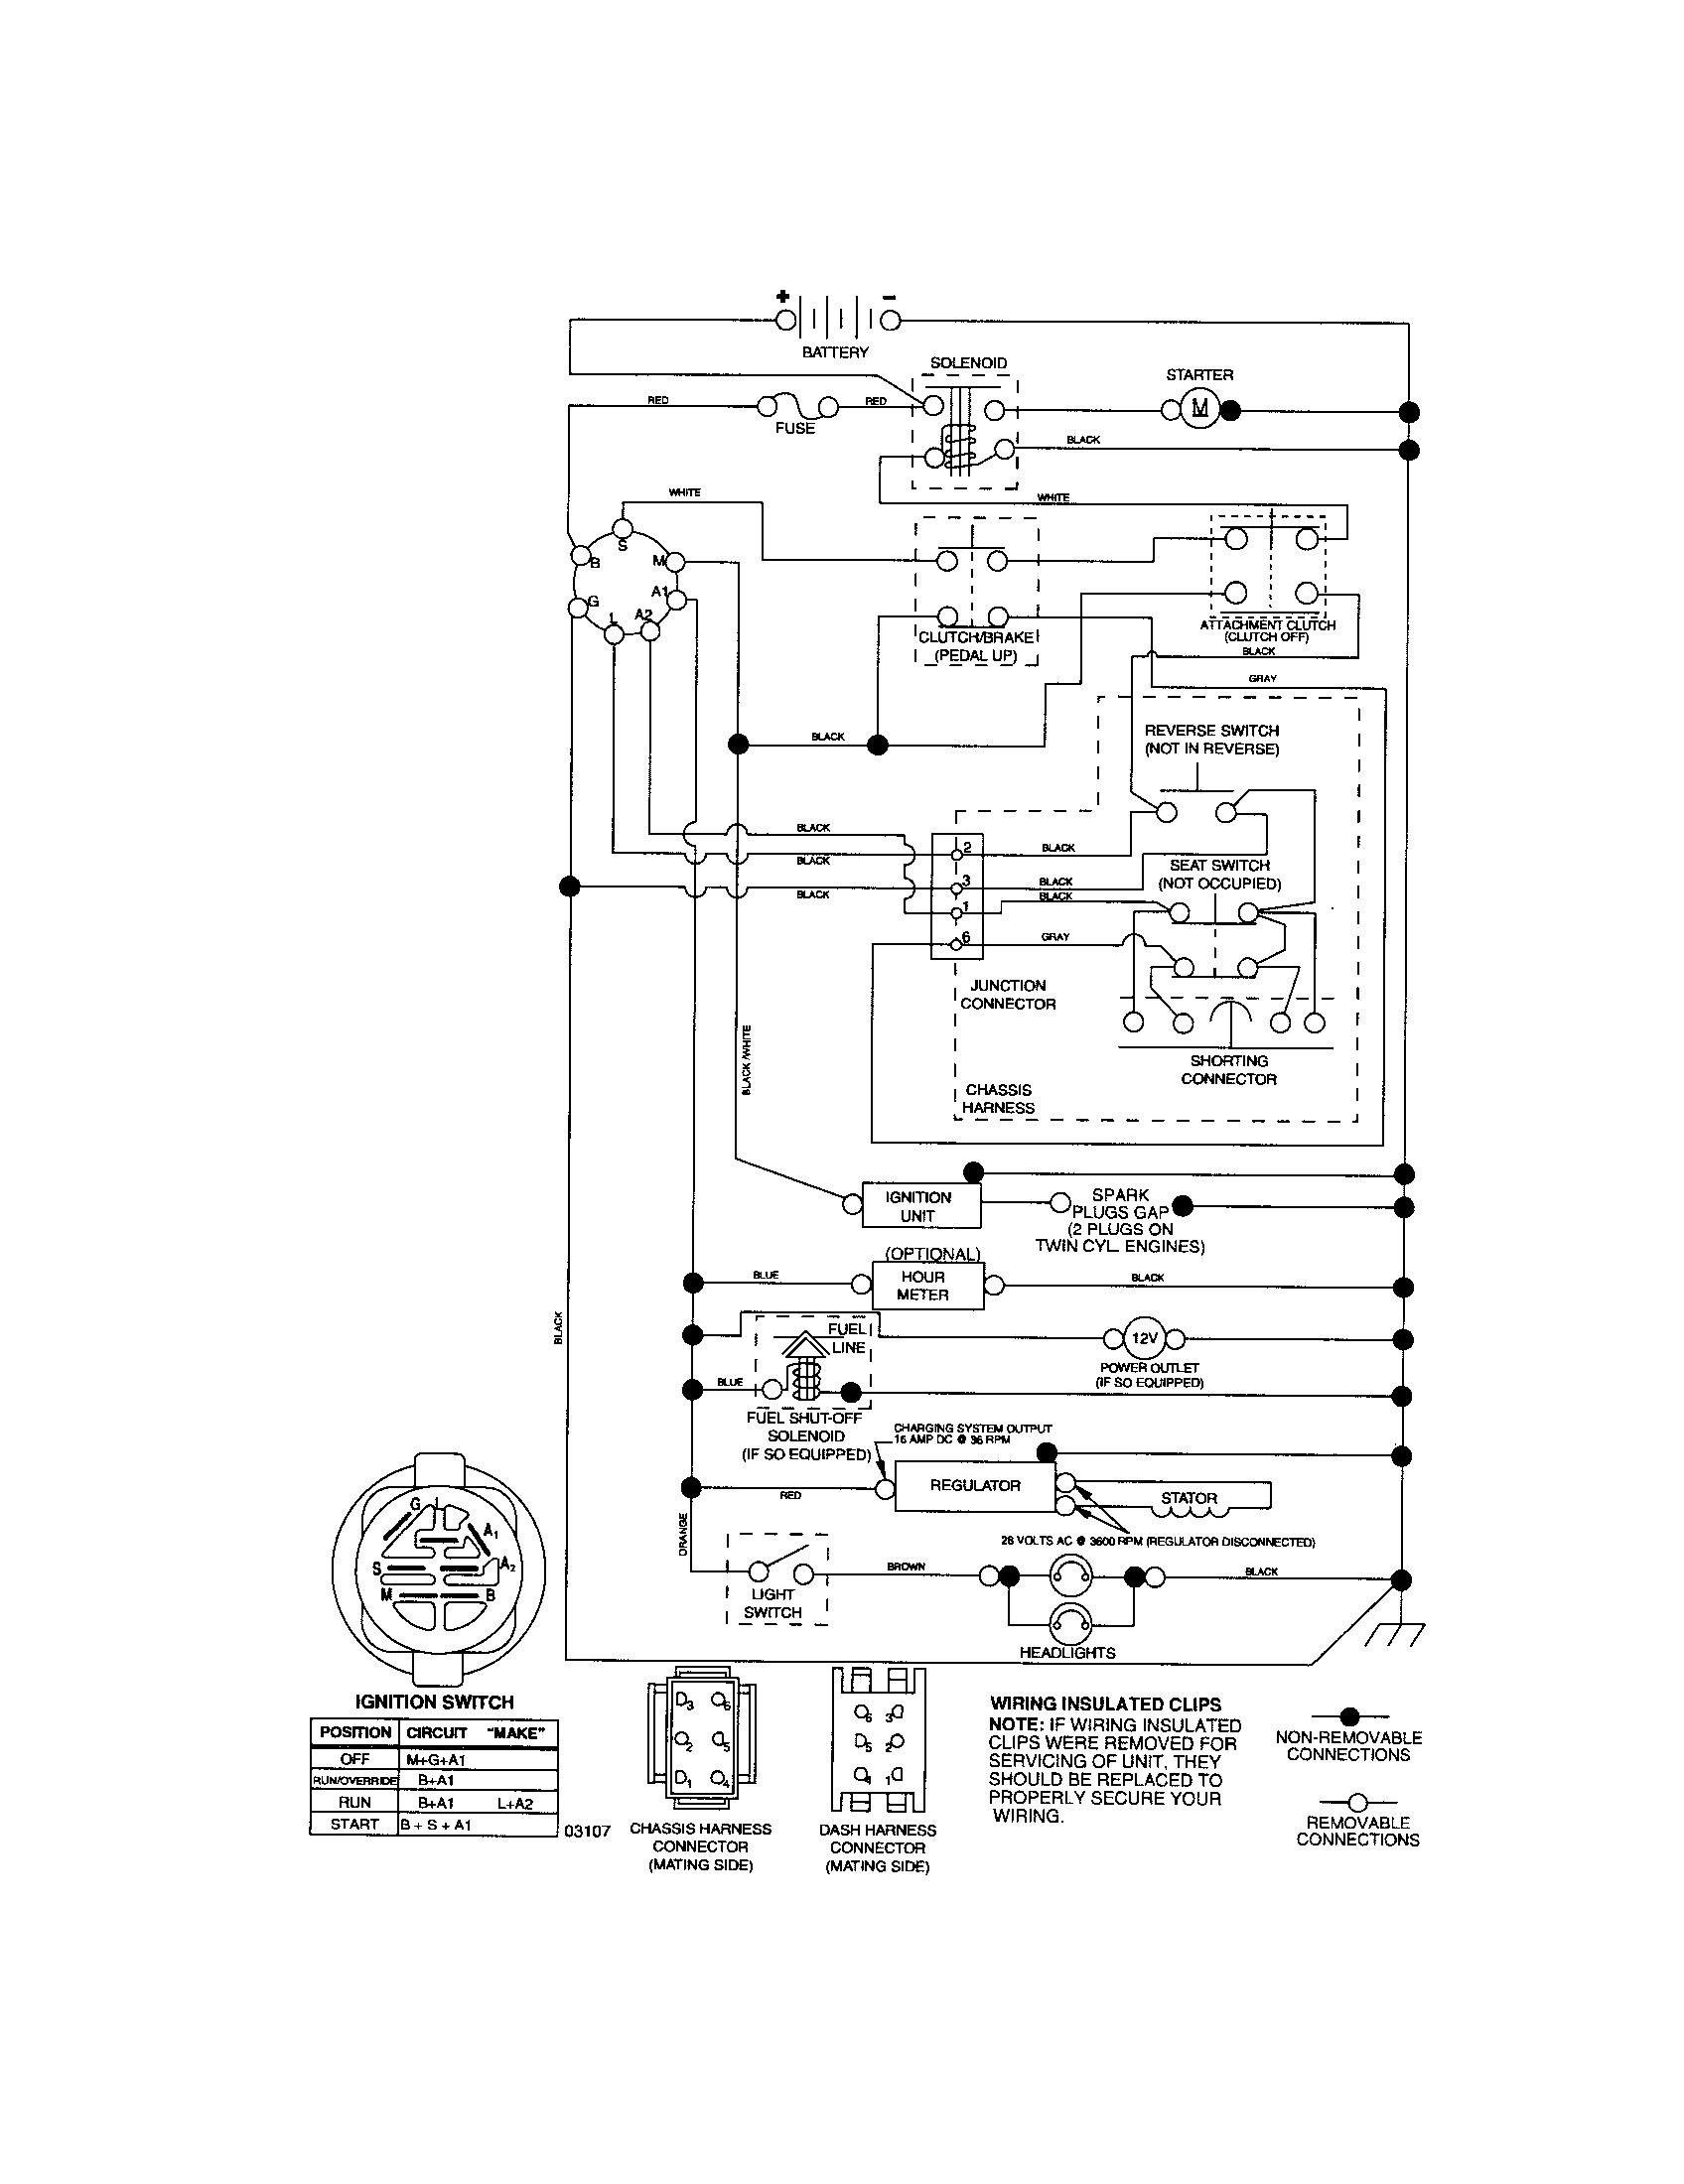 Tractor Ignition Switch Wiring Diagram from static-resources.imageservice.cloud